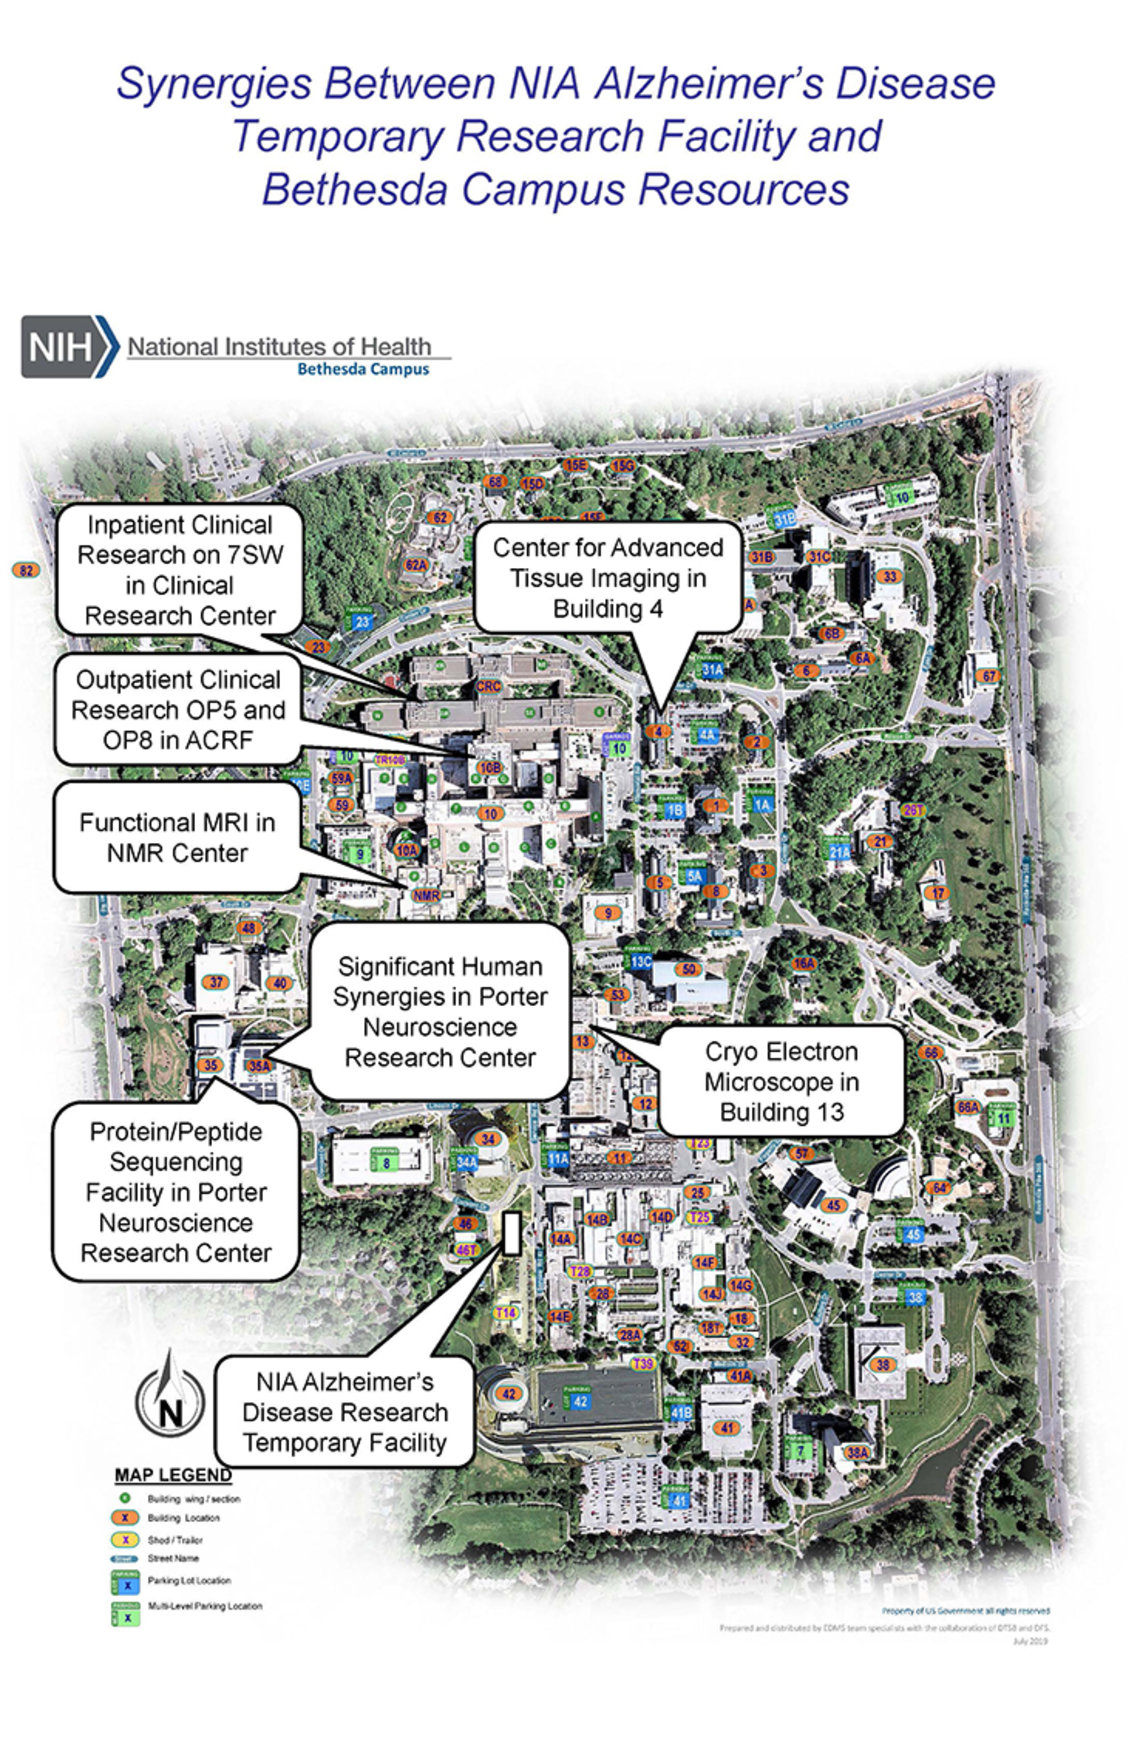 A map of NIH's campus illustrates future construction. Conversation bubbles point to the southwest corner of campus, where on campus the temporary Alzheimer's research facility will be located and the northwest corner of campus, where an administrative building will be located.